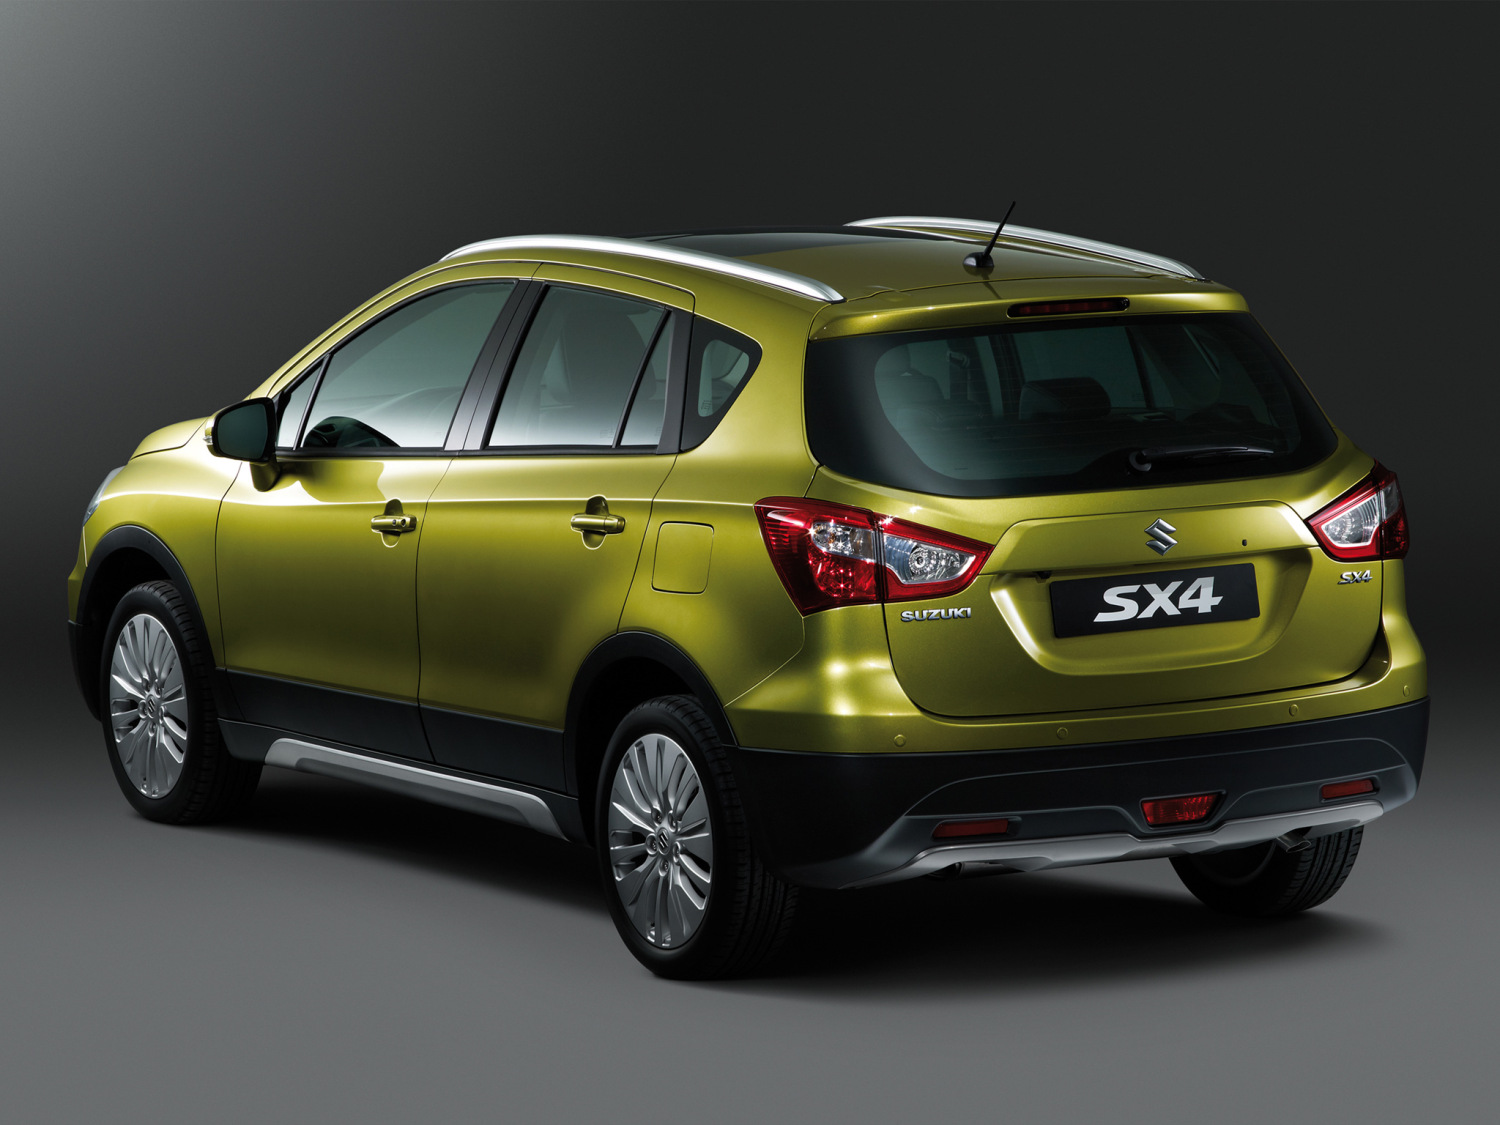 suzuki sx4 2013 e concept s cross. Black Bedroom Furniture Sets. Home Design Ideas